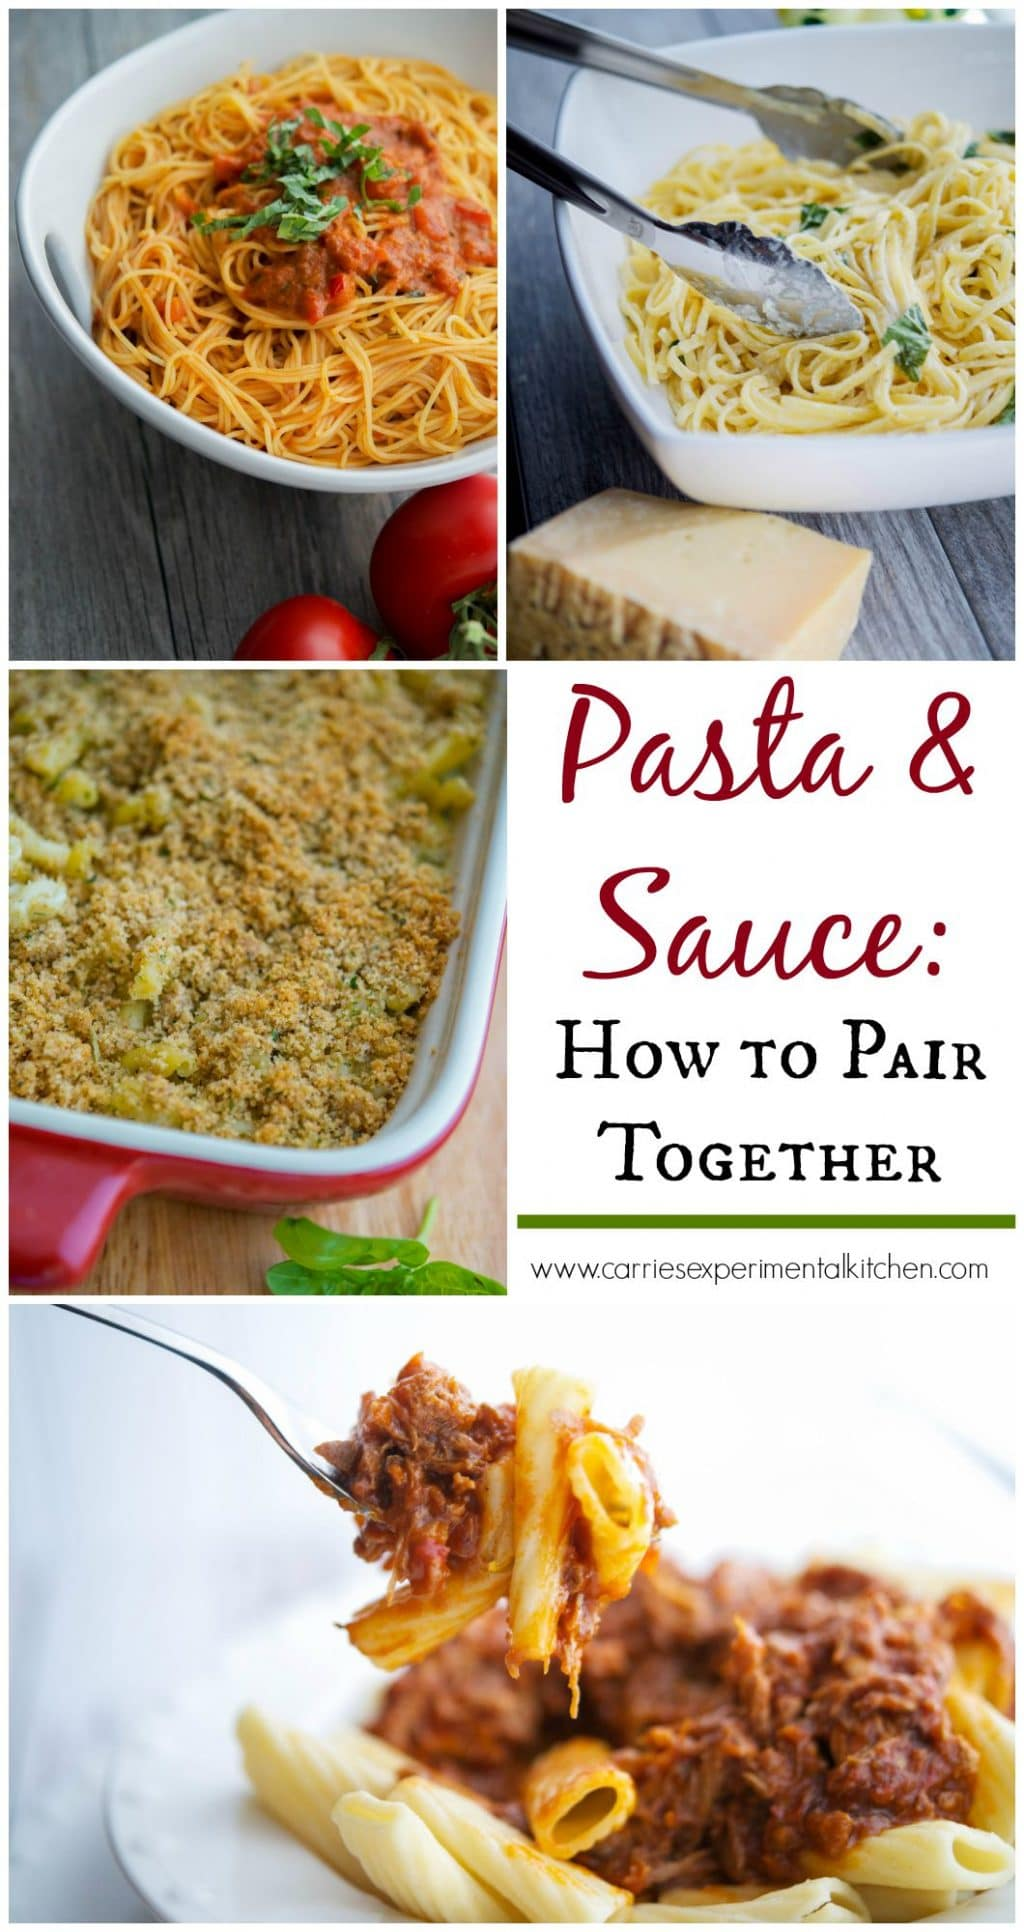 Did you know that there are over 350 types of shaped pasta? Find out which pasta sauce goes best with your favorite pasta. #pasta #pastasauce #sauce